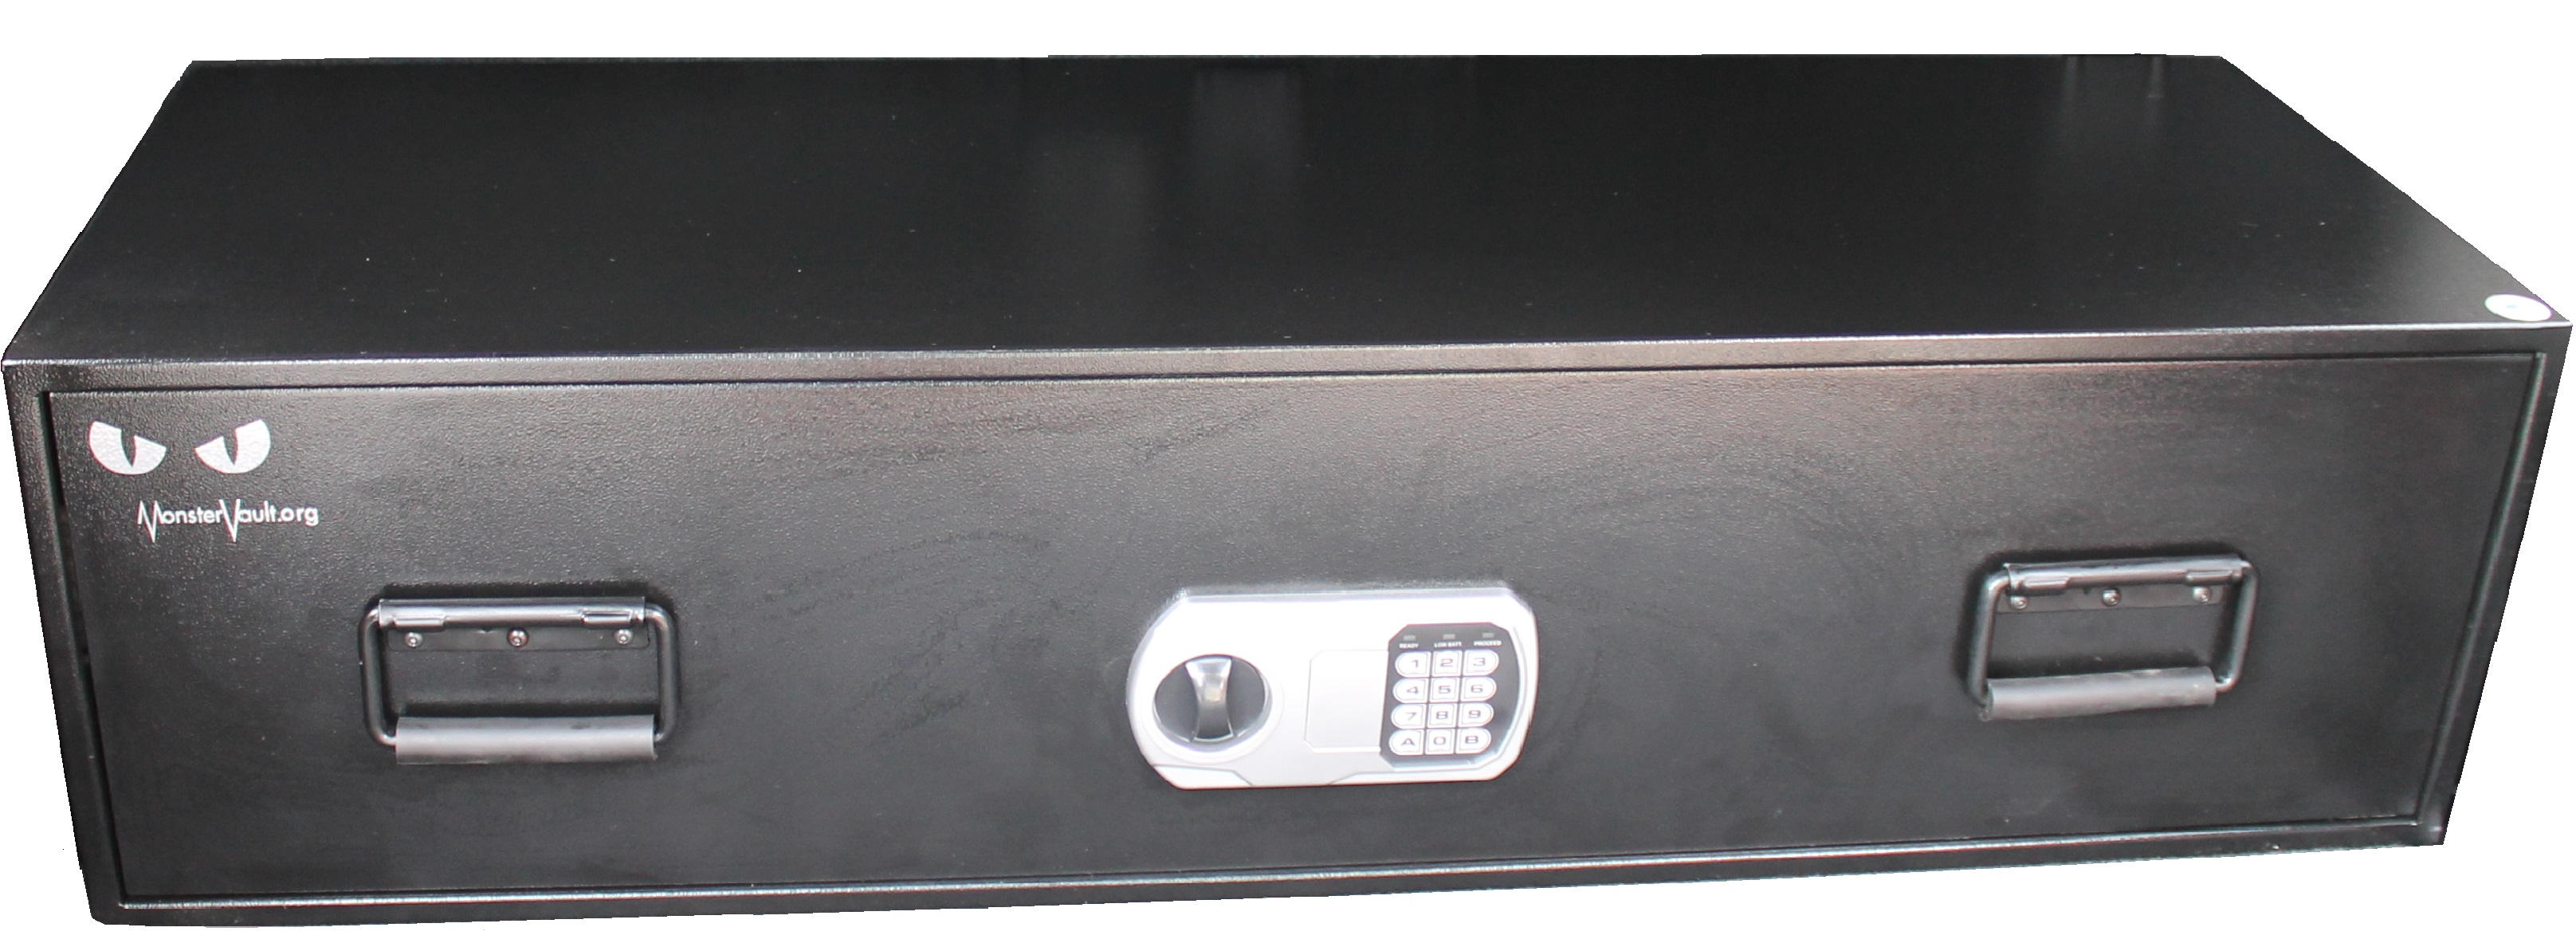 Monstervault Tactical Safe 4116